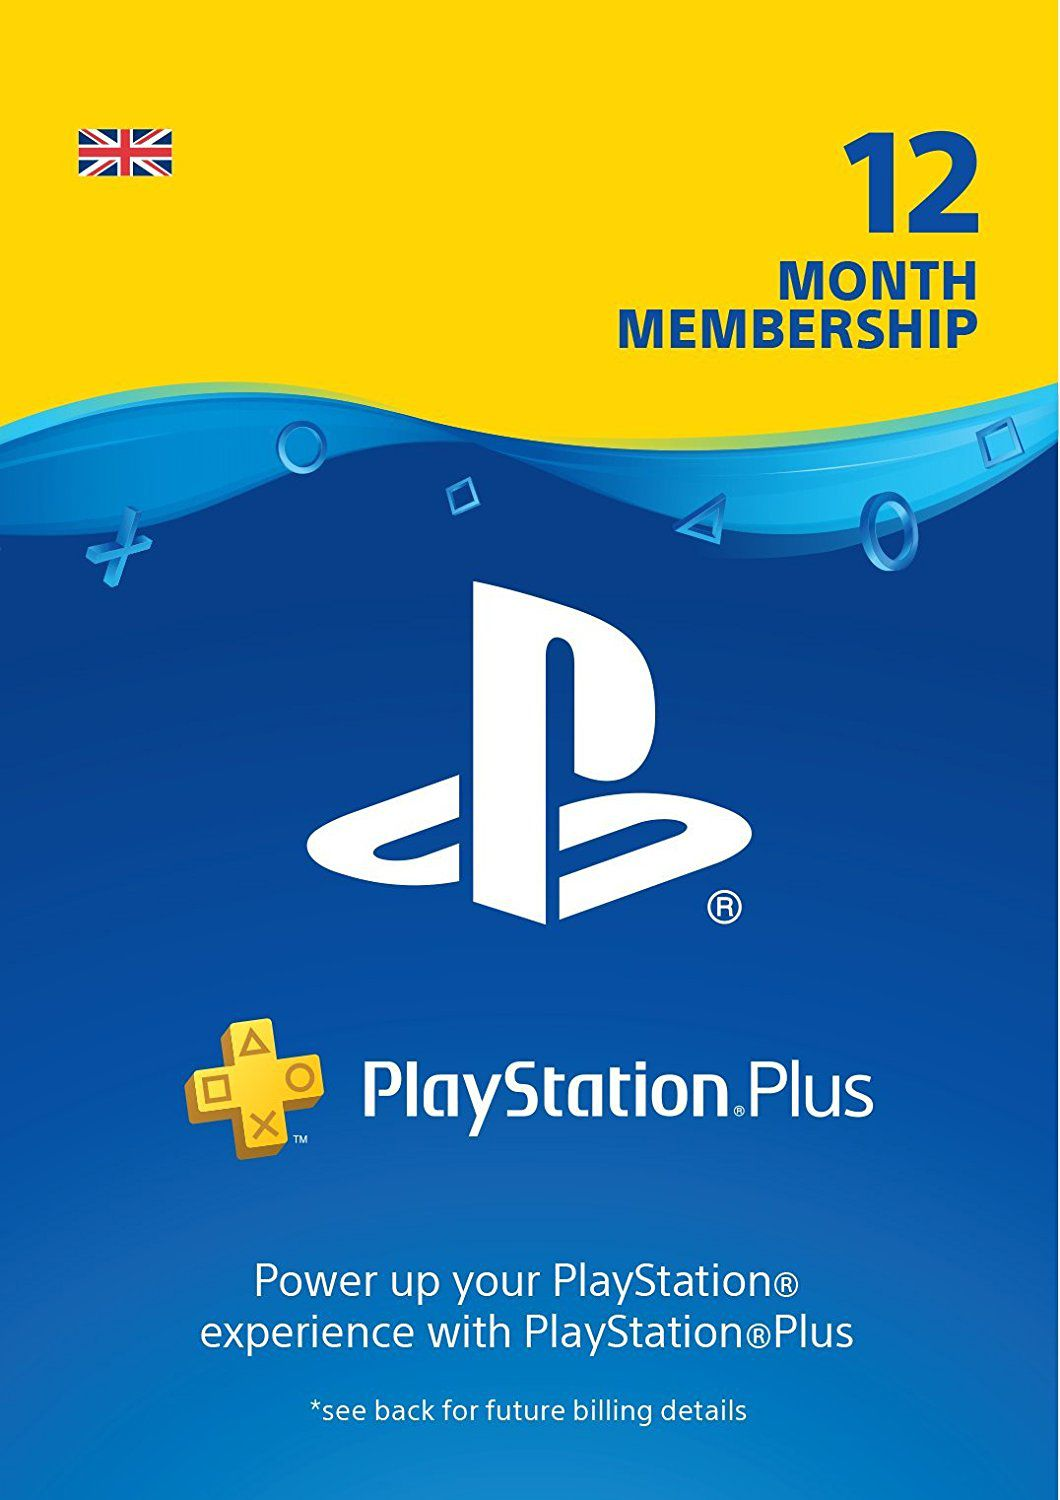 Cartão Playstation Plus 12 Meses (1 Ano) PSN UK